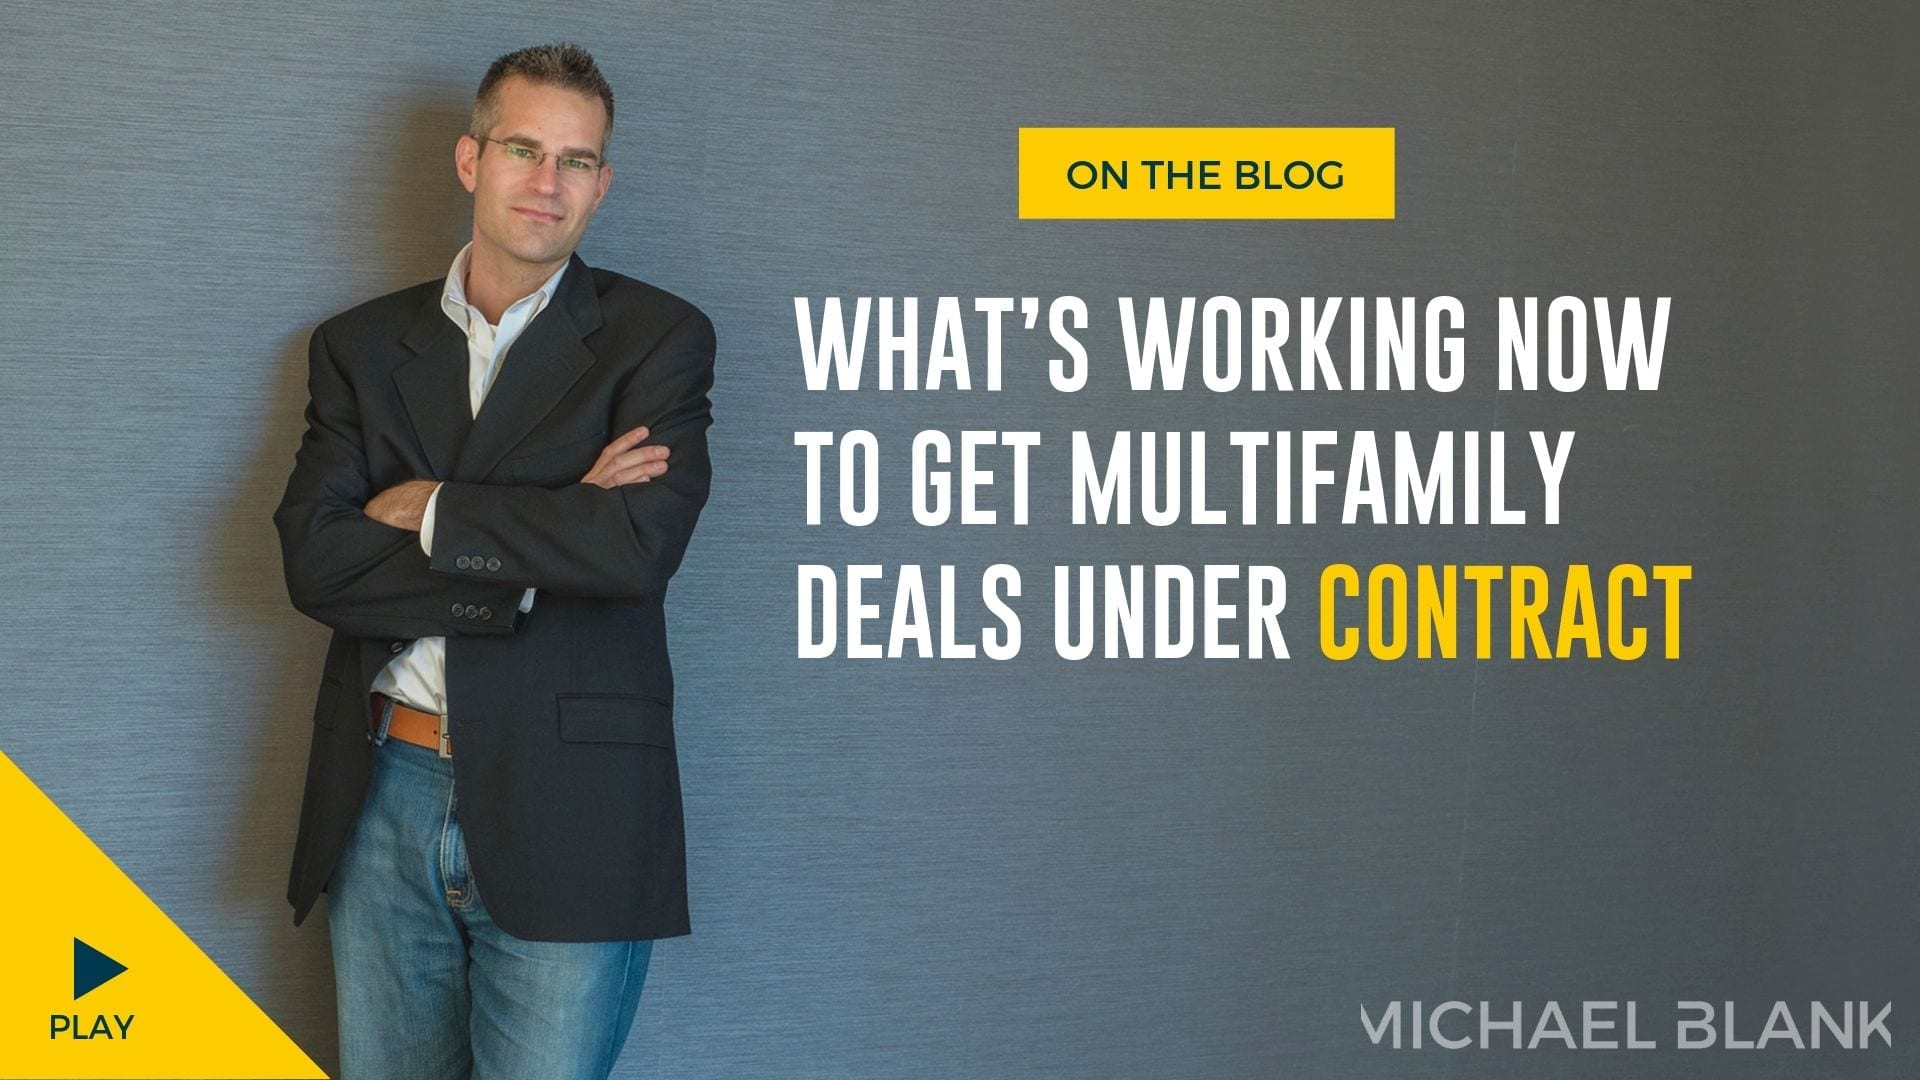 What's Working Now to Get Multifamily Deals Under Contract